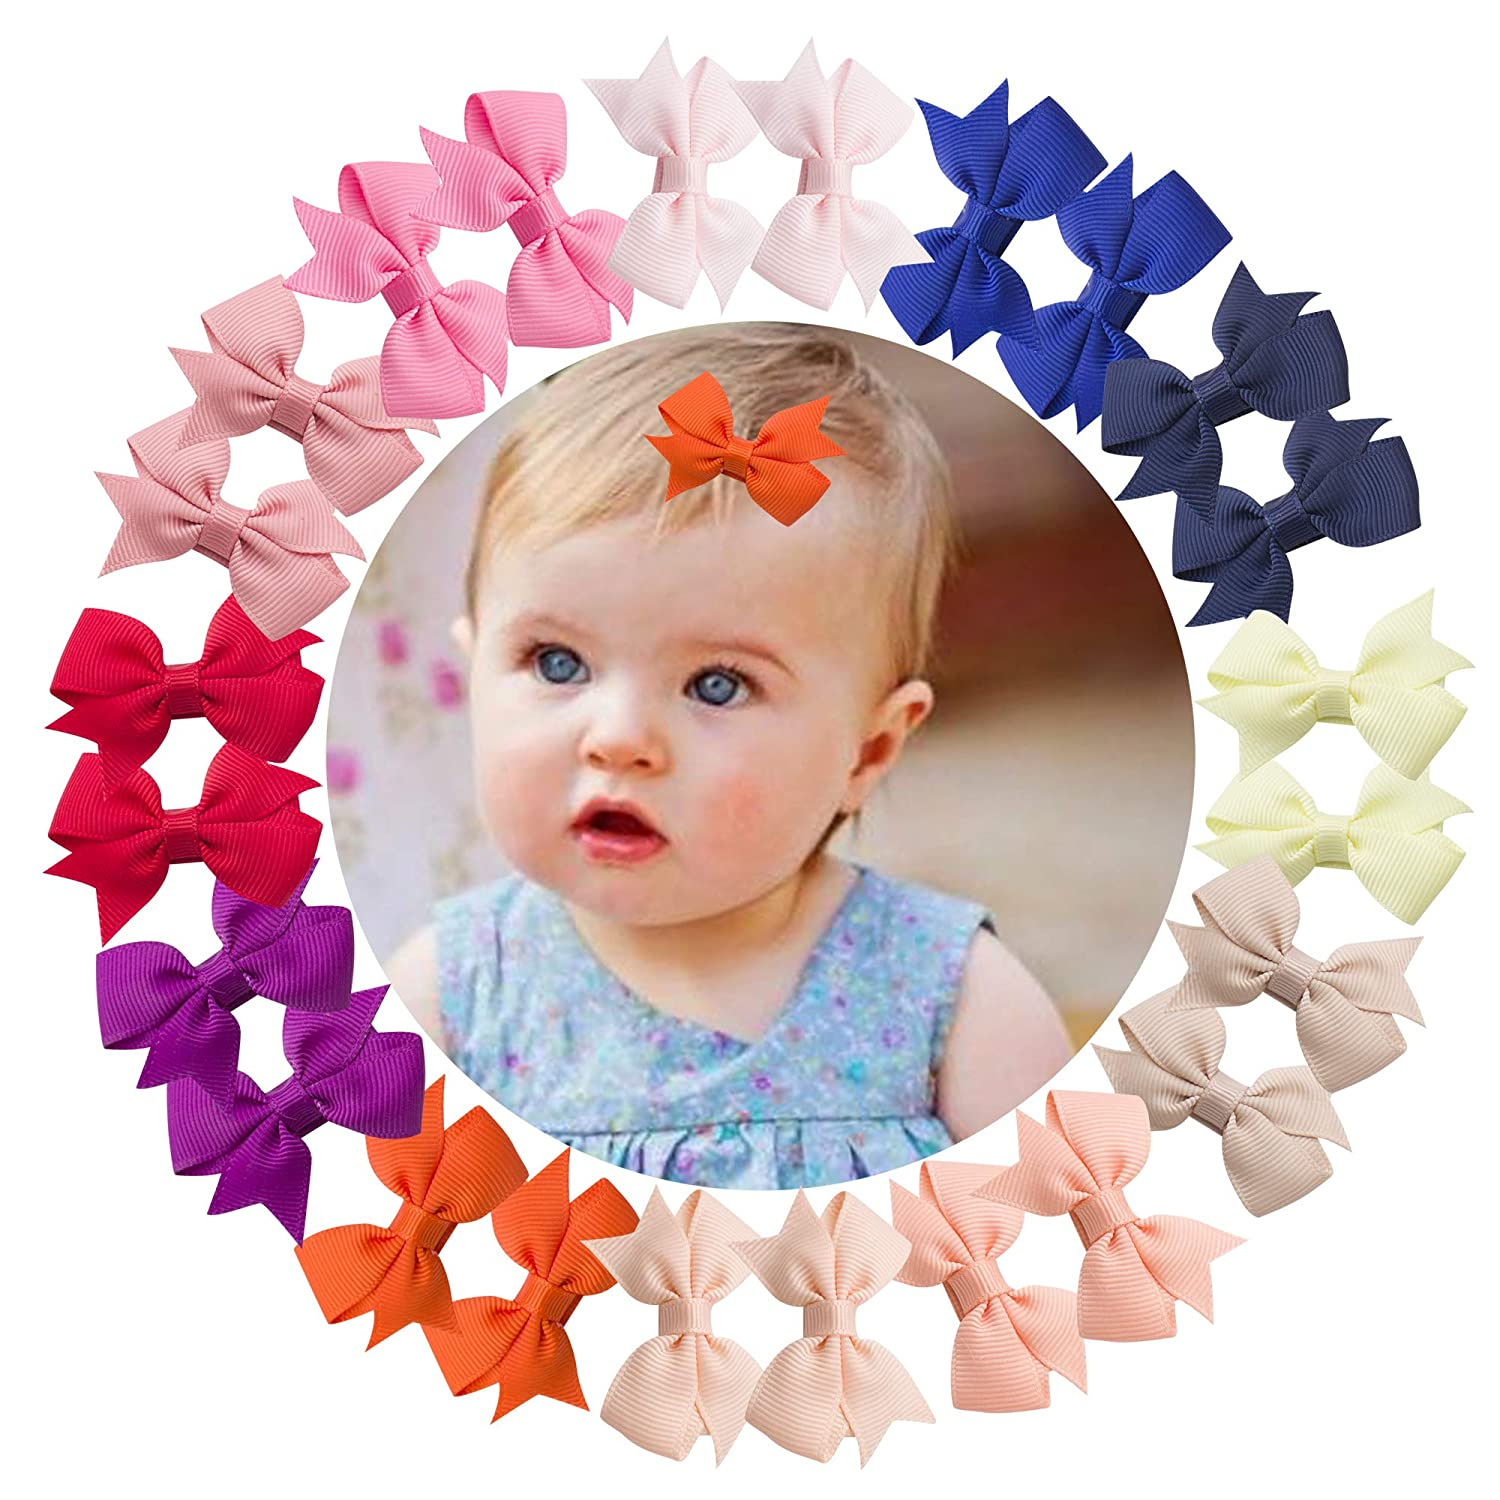 VINOBOW 24Piece 2 Inch Pigtail Pinwheel Hair Bows Girls Fully Ribbon Covered Clips For Baby Girls Toddlers Kids